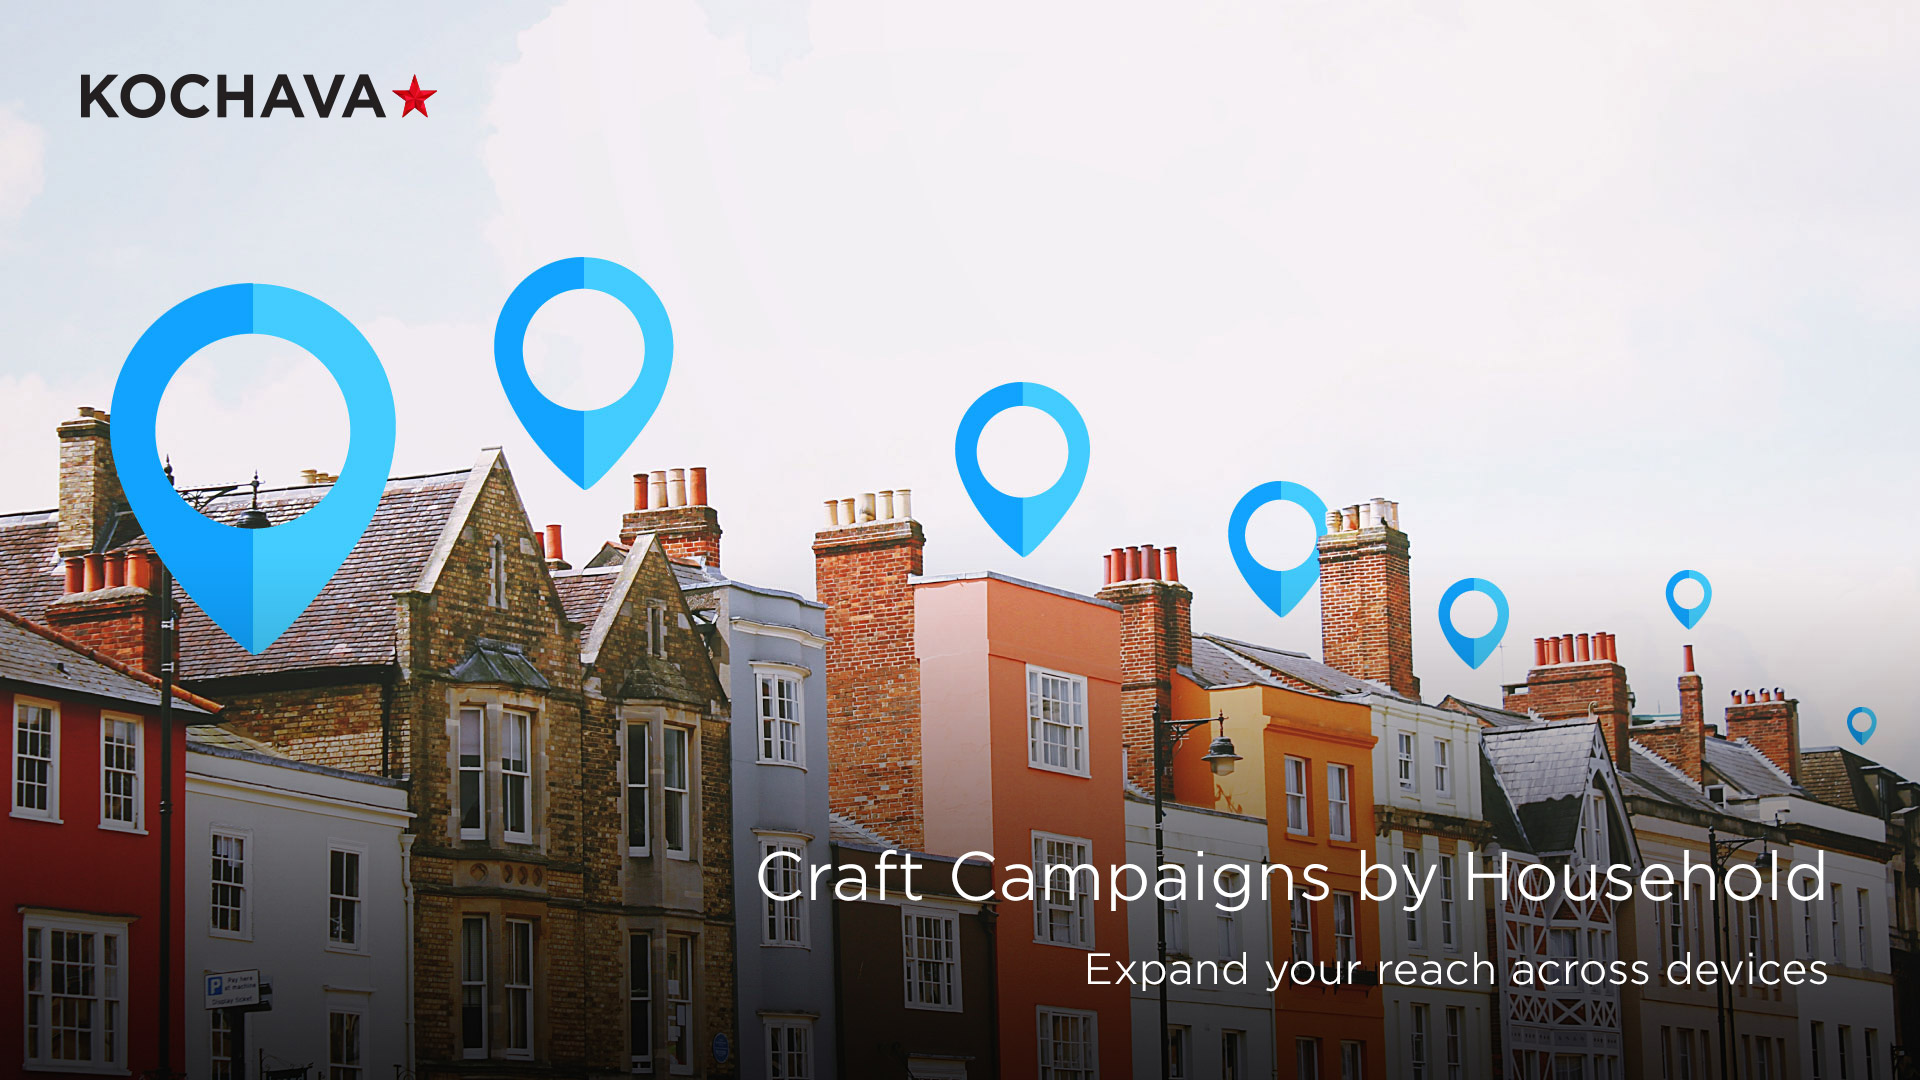 Craft Campaigns by Household